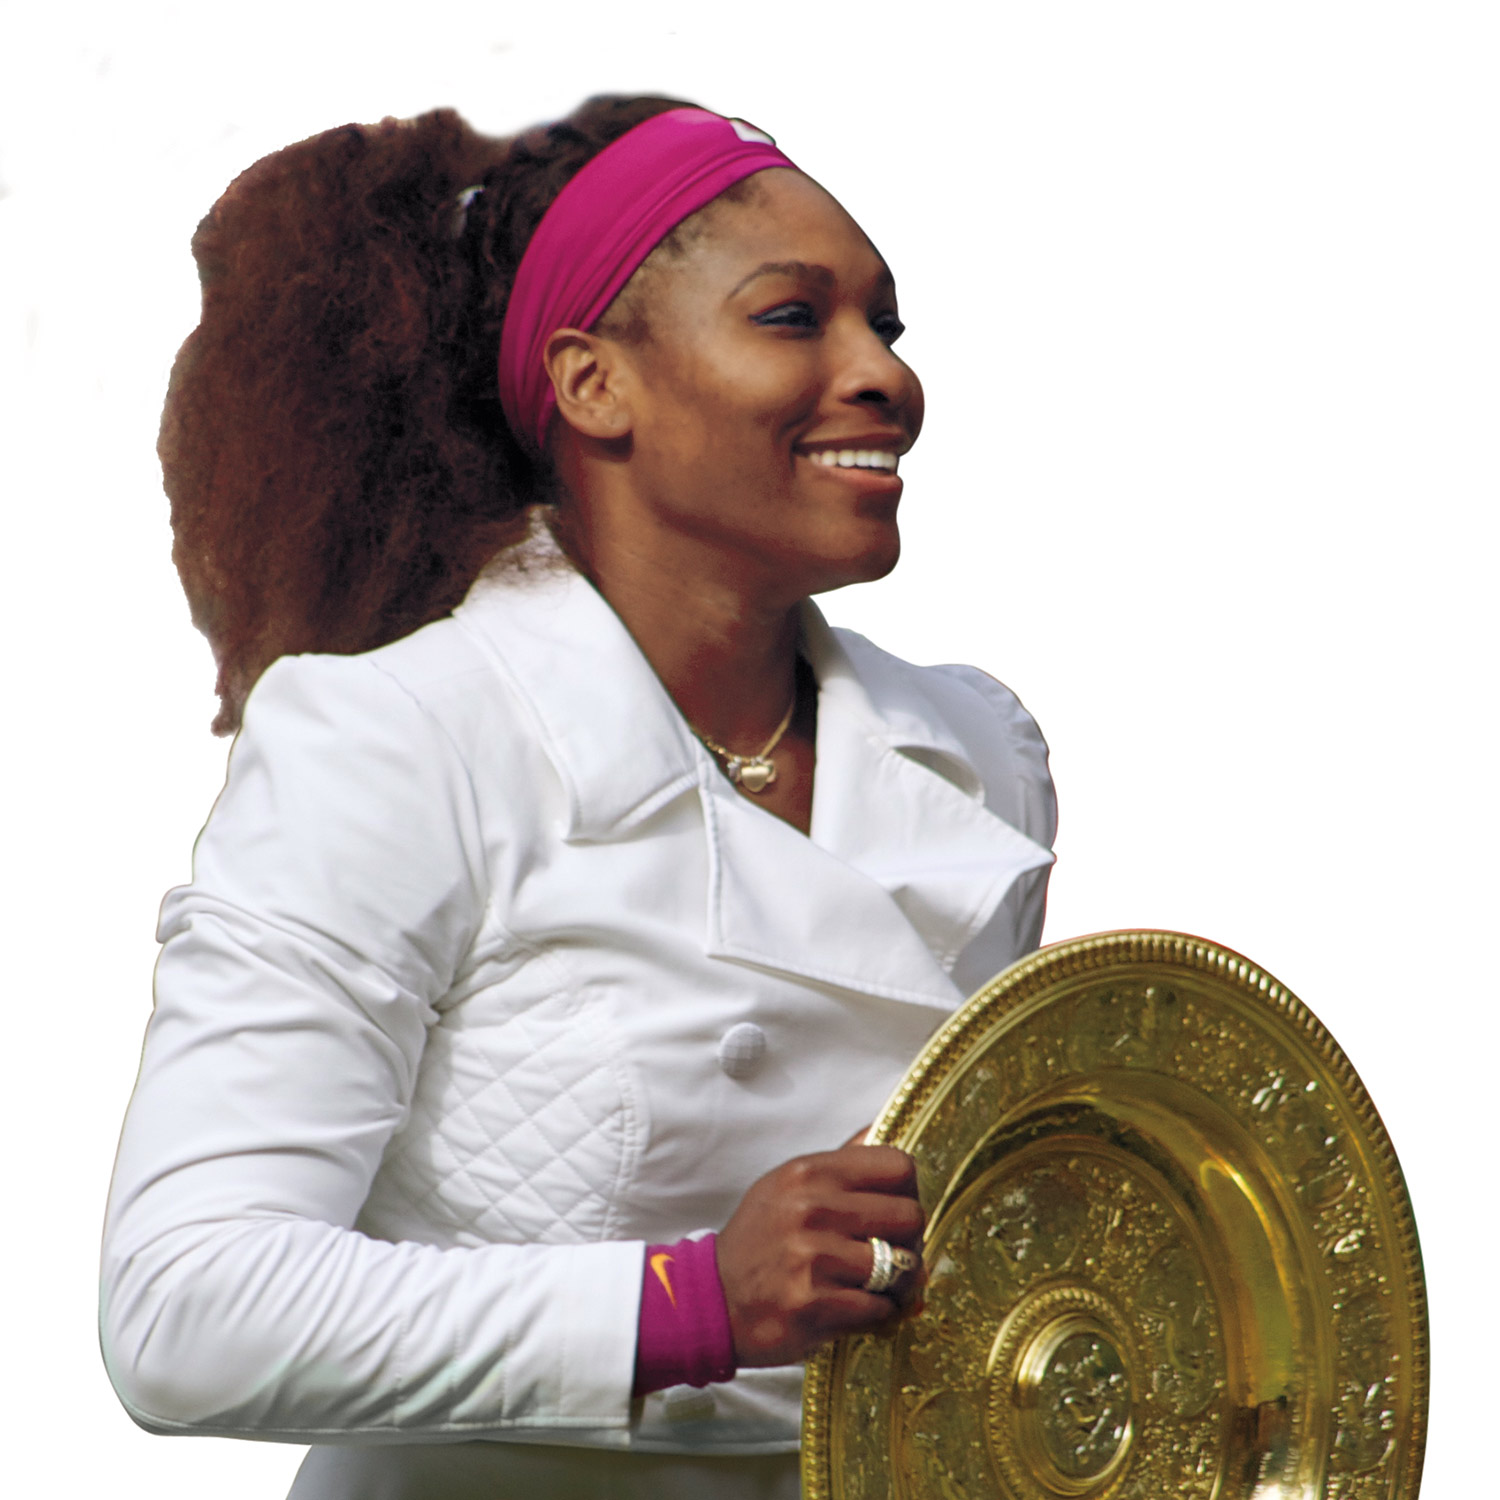 Perspectives My Culture Collection Chandra Greer 90 Serena Williams